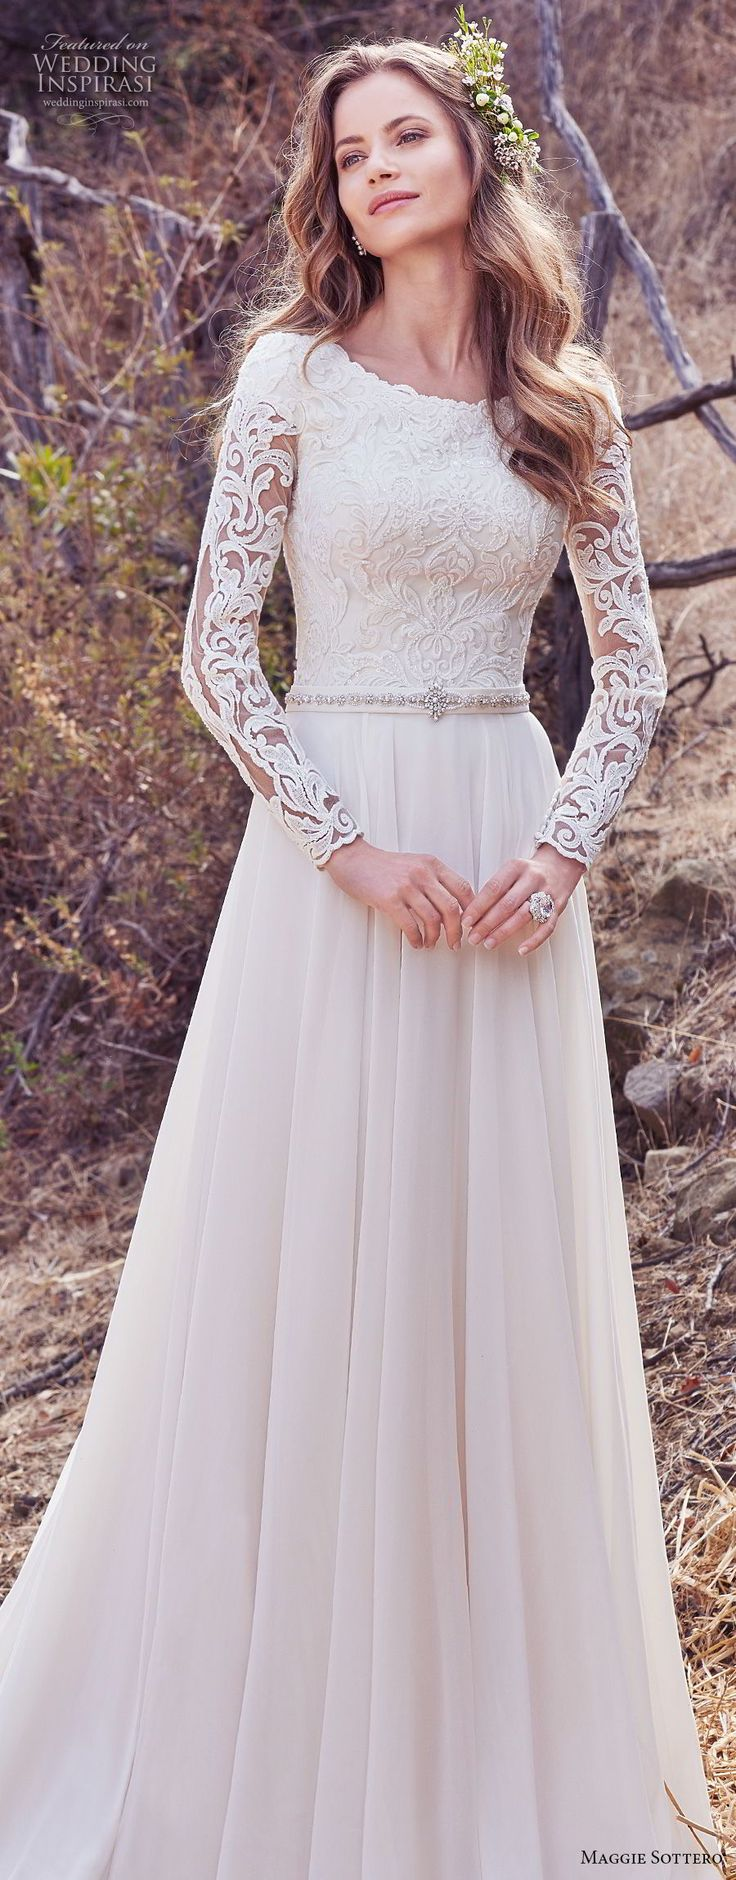 "Maggie Sottero Fall 2017 Wedding Dresses — ""Cordelia"" Bridal Collection"